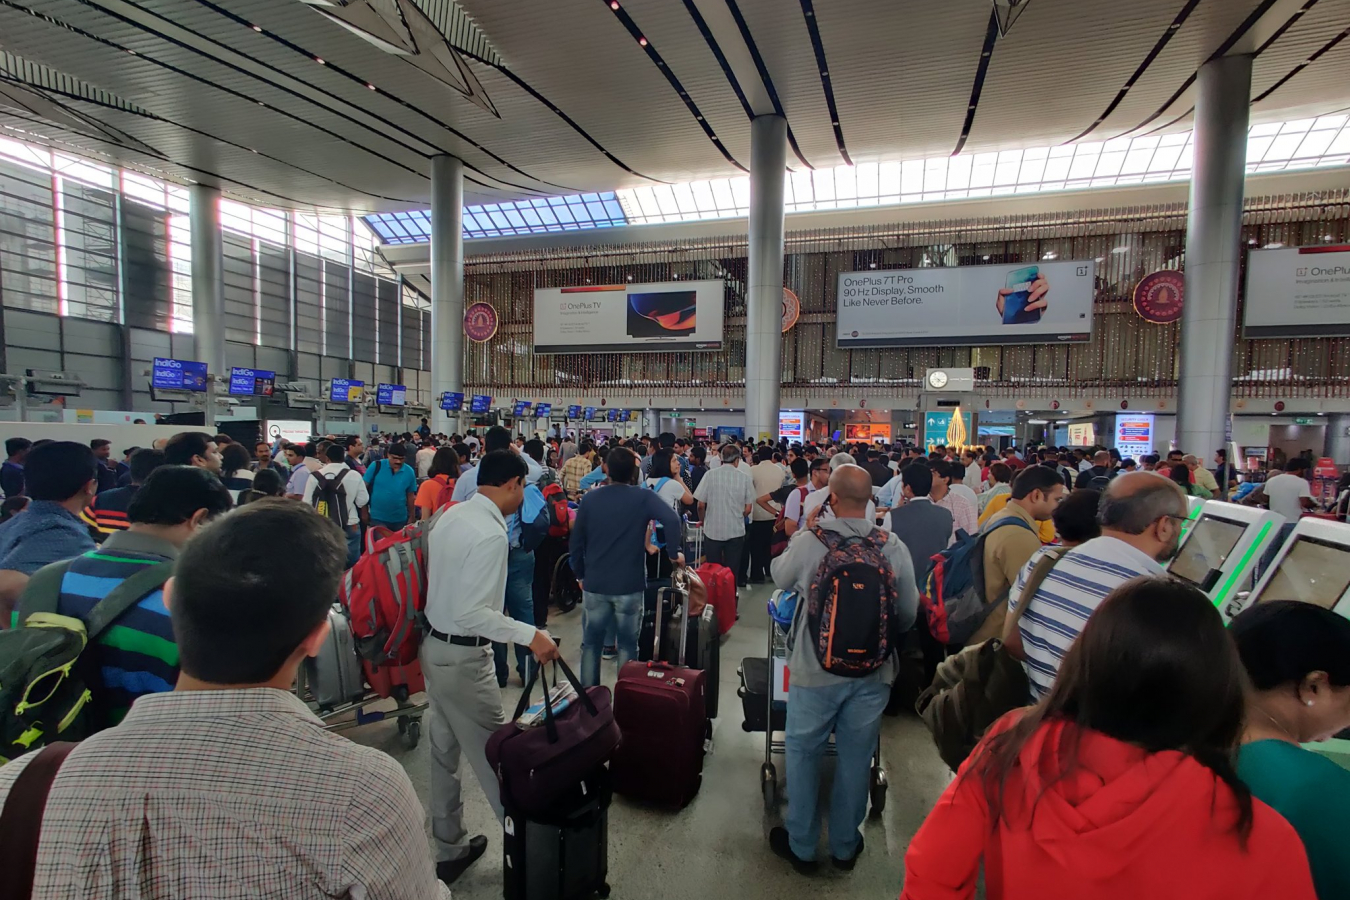 Scene at an Indian Airport